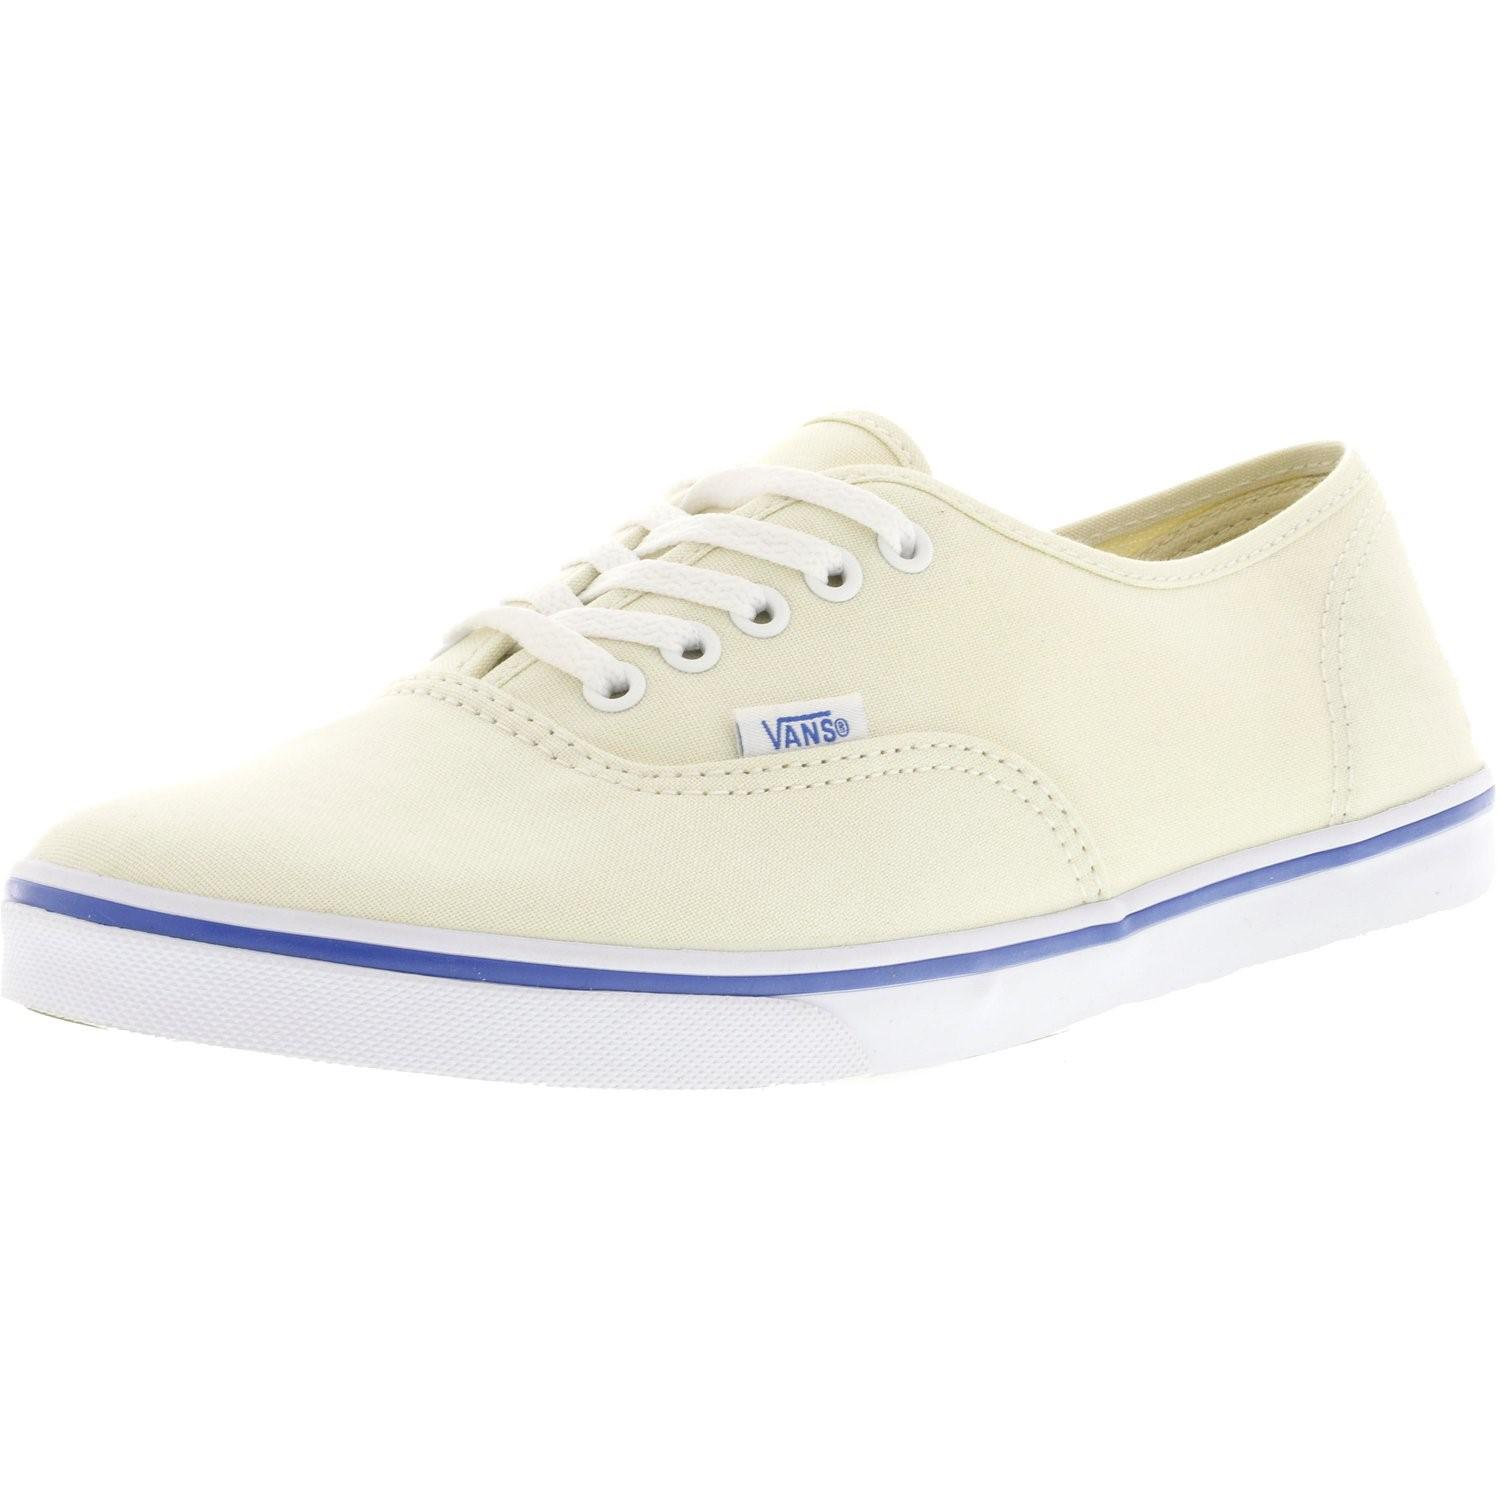 5a91d931d0 Lyst - Vans Authentic Lo Pro Ivory Sneakers in White